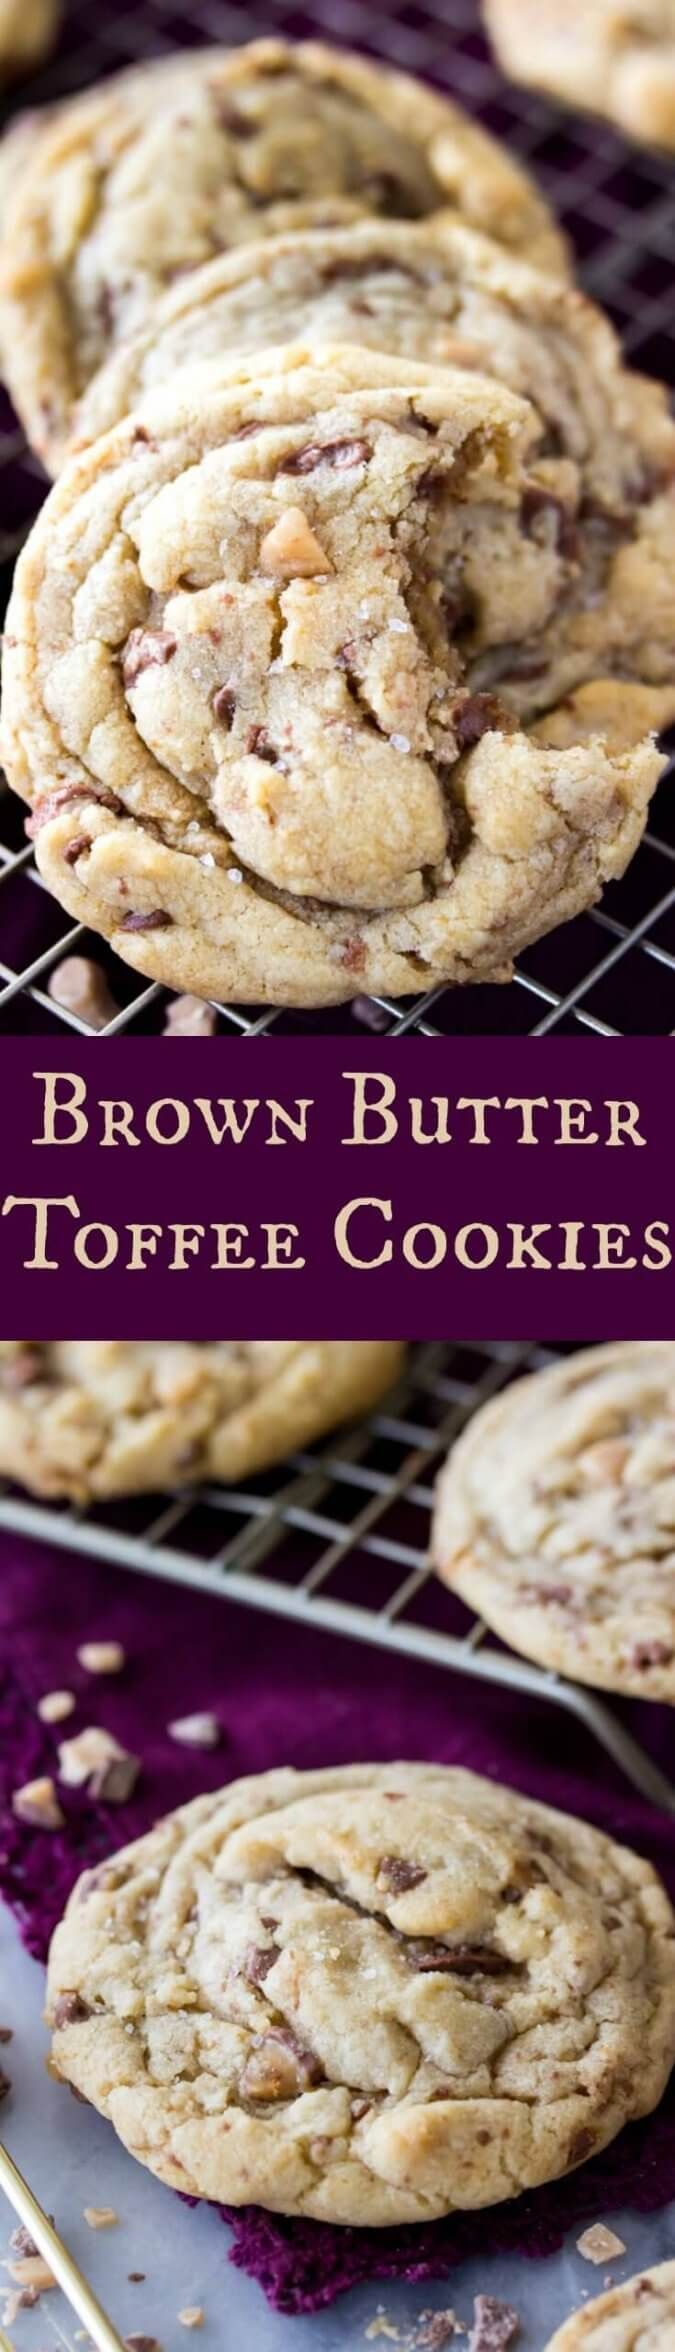 Brown Butter Toffee Cookies - Sugar Spun Run